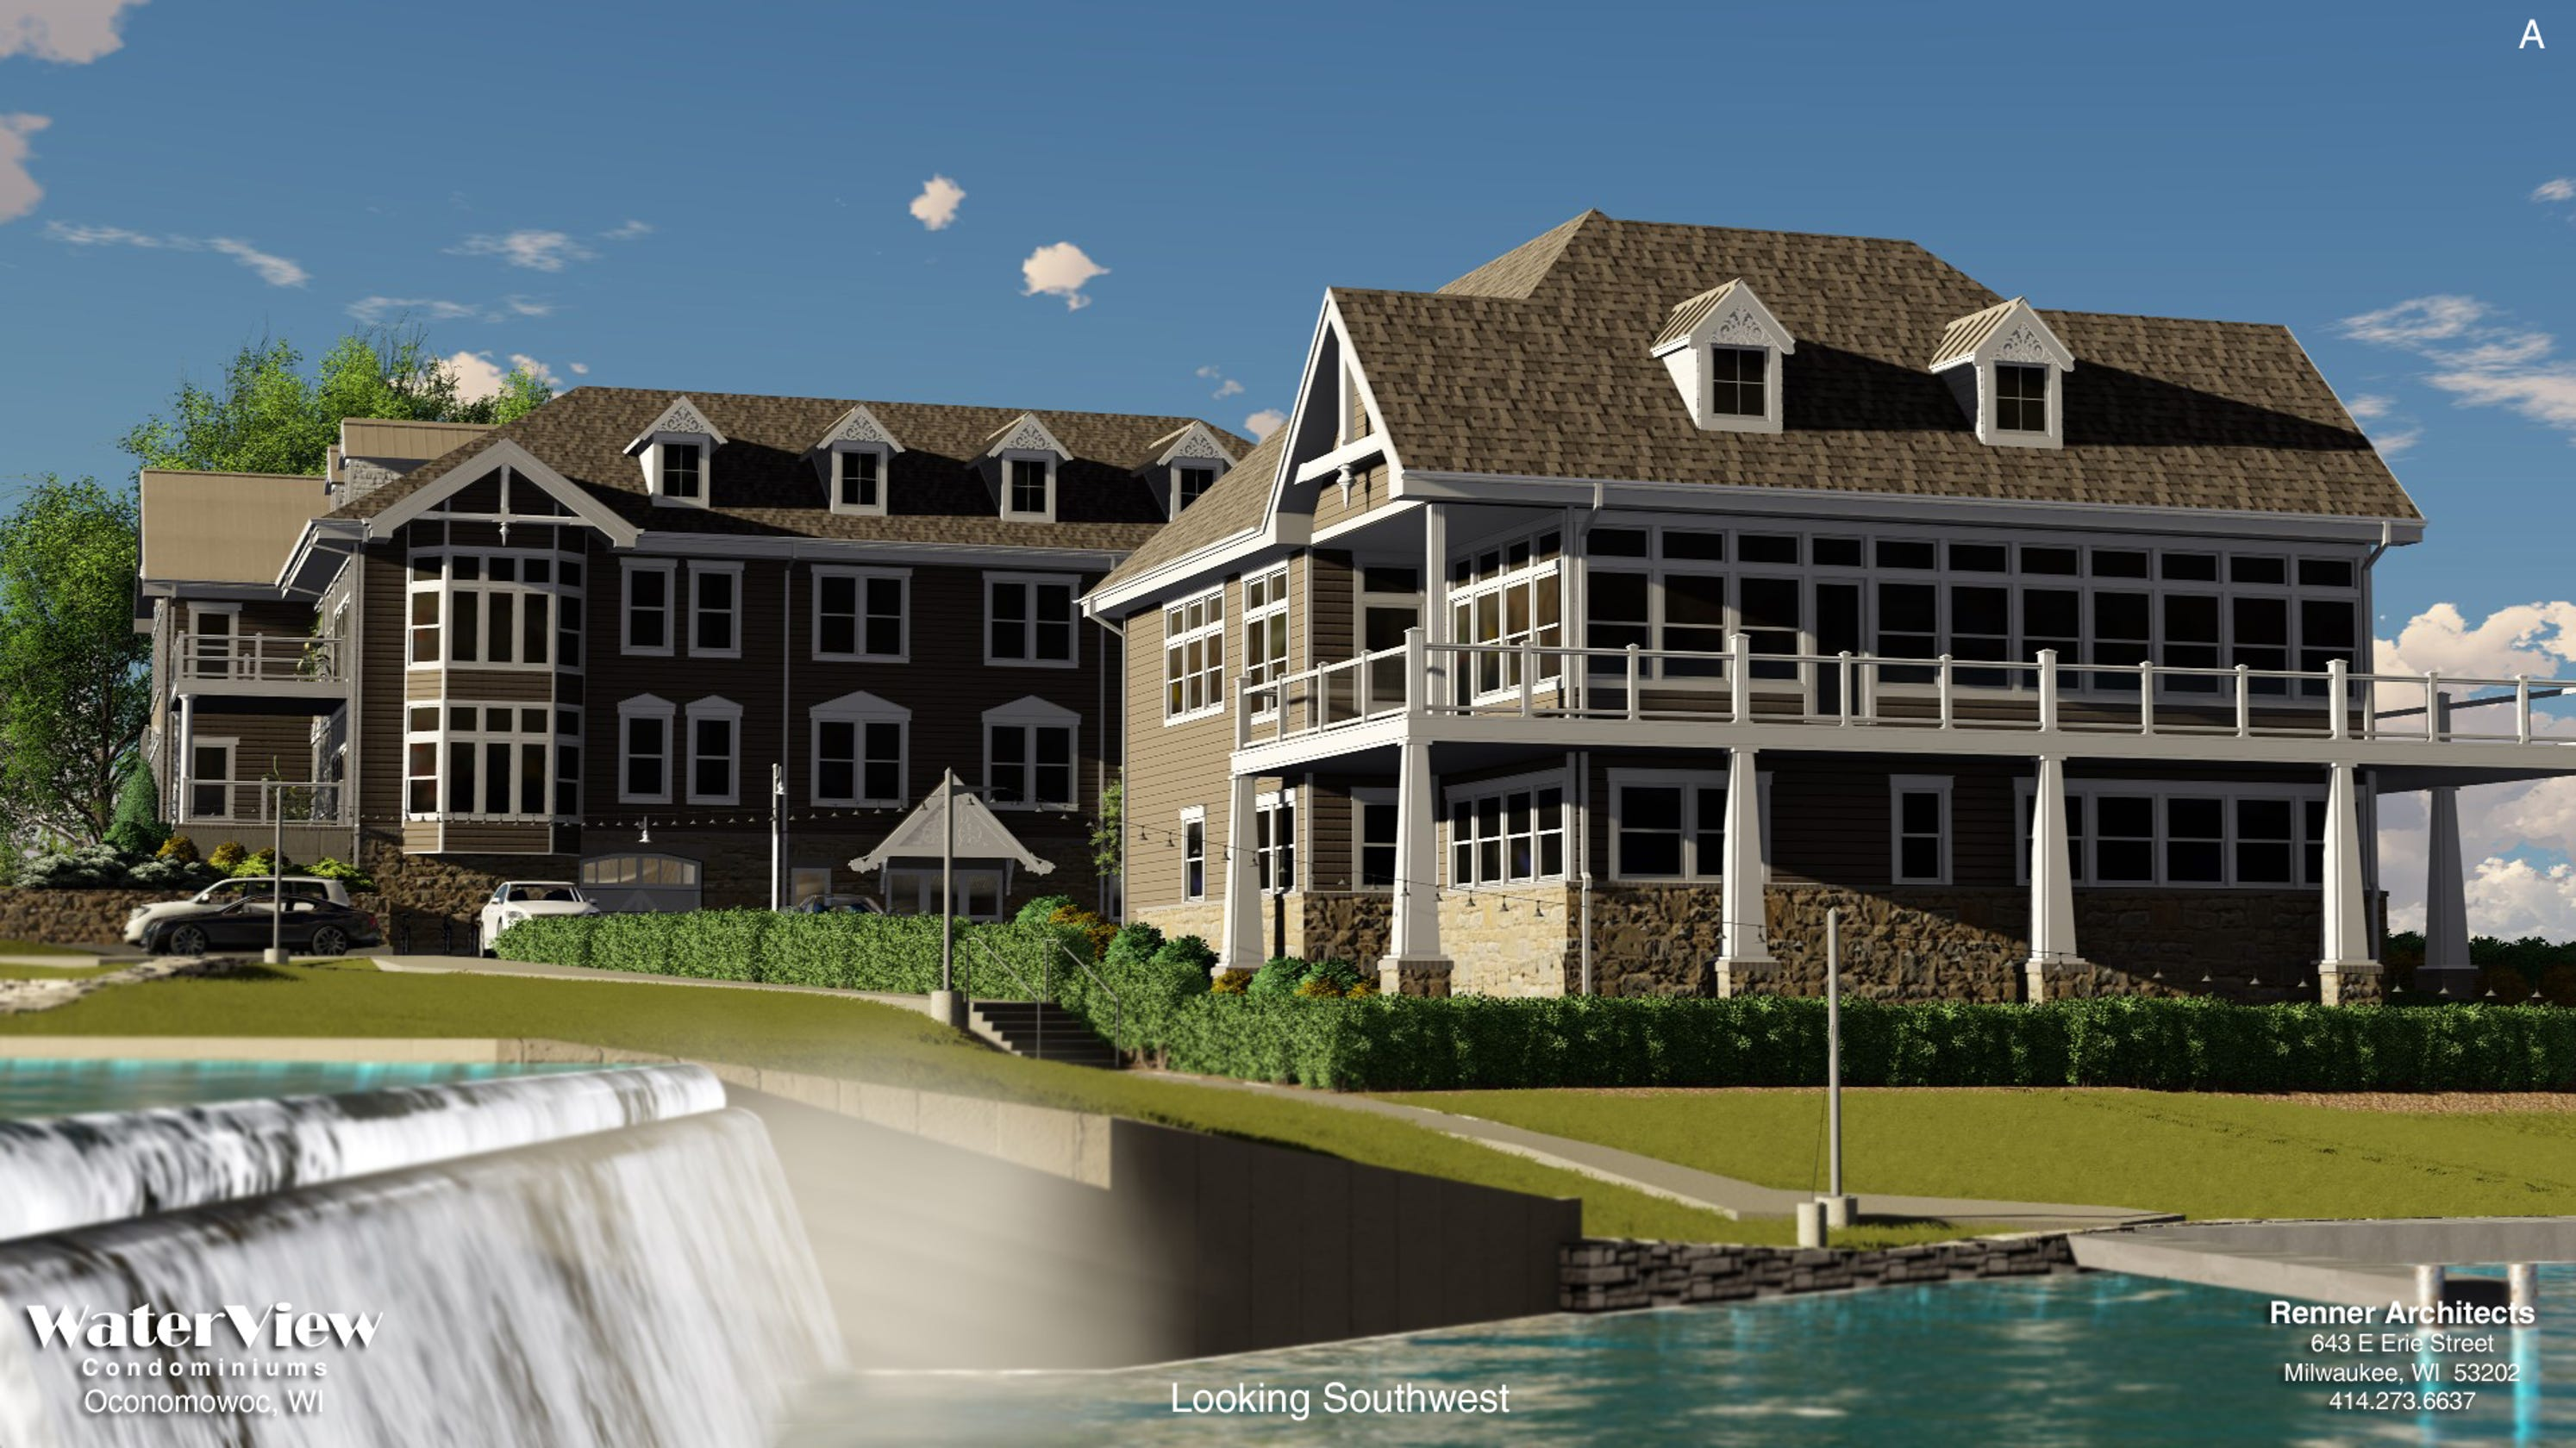 Consultant will review proposed Oconomowoc condo project 2988x1680